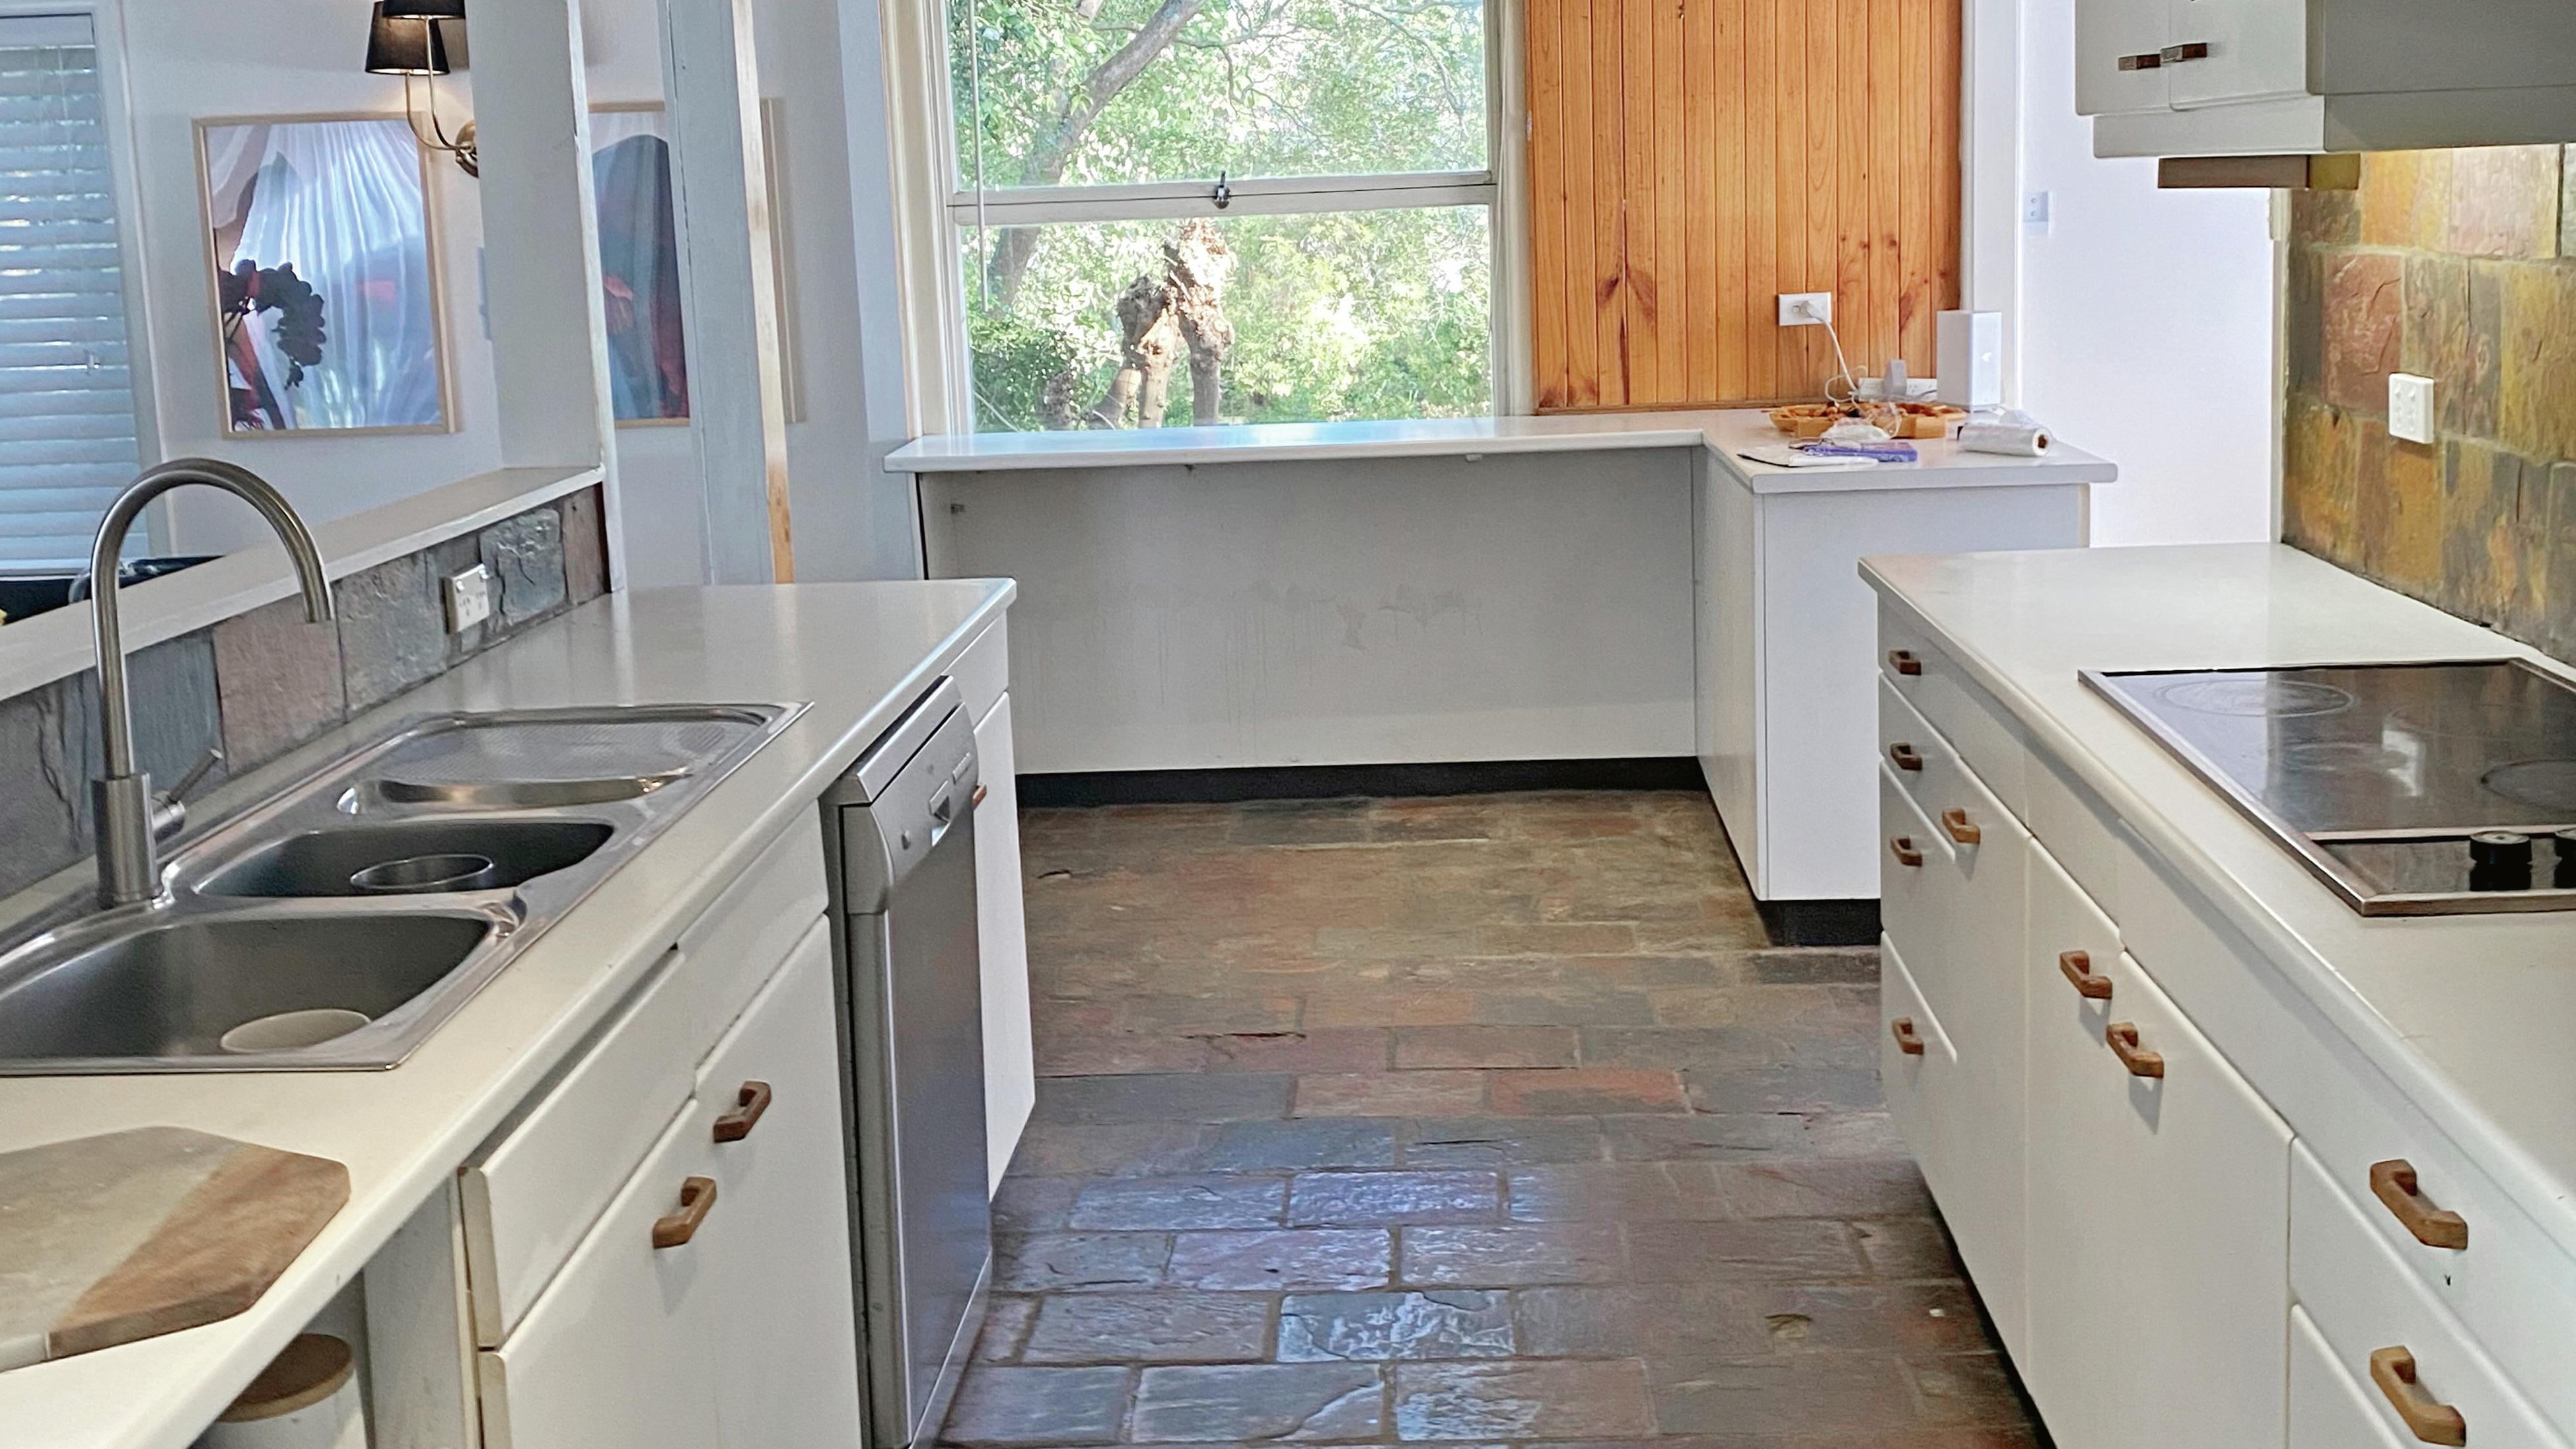 70's style warm toned kitchen with outdated cabinetry and the same large block tiles on the floor and the splashback